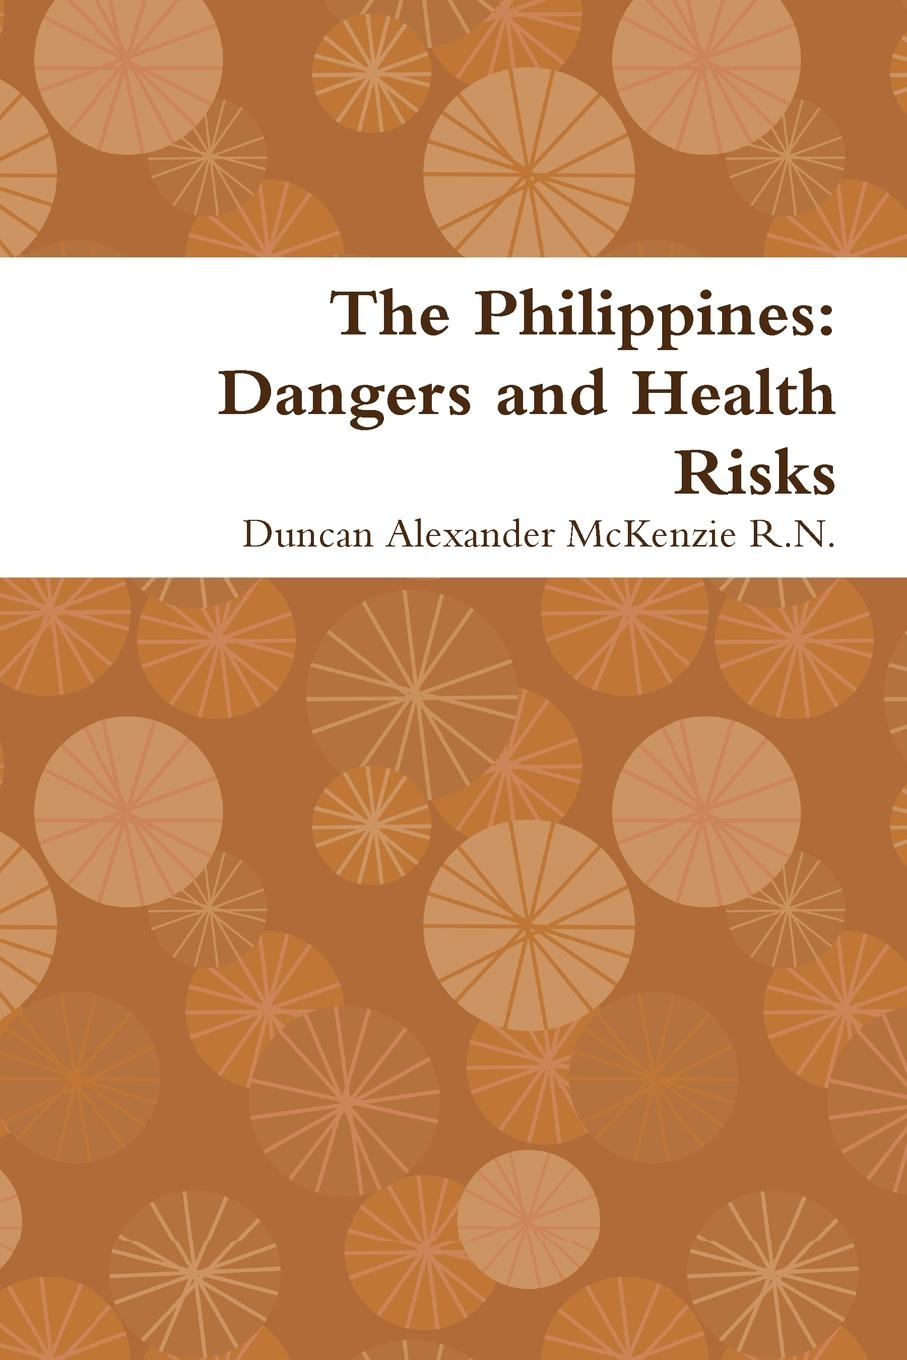 Duncan Alexander McKenzie R. N. The Philippines. Dangers and Health Risks